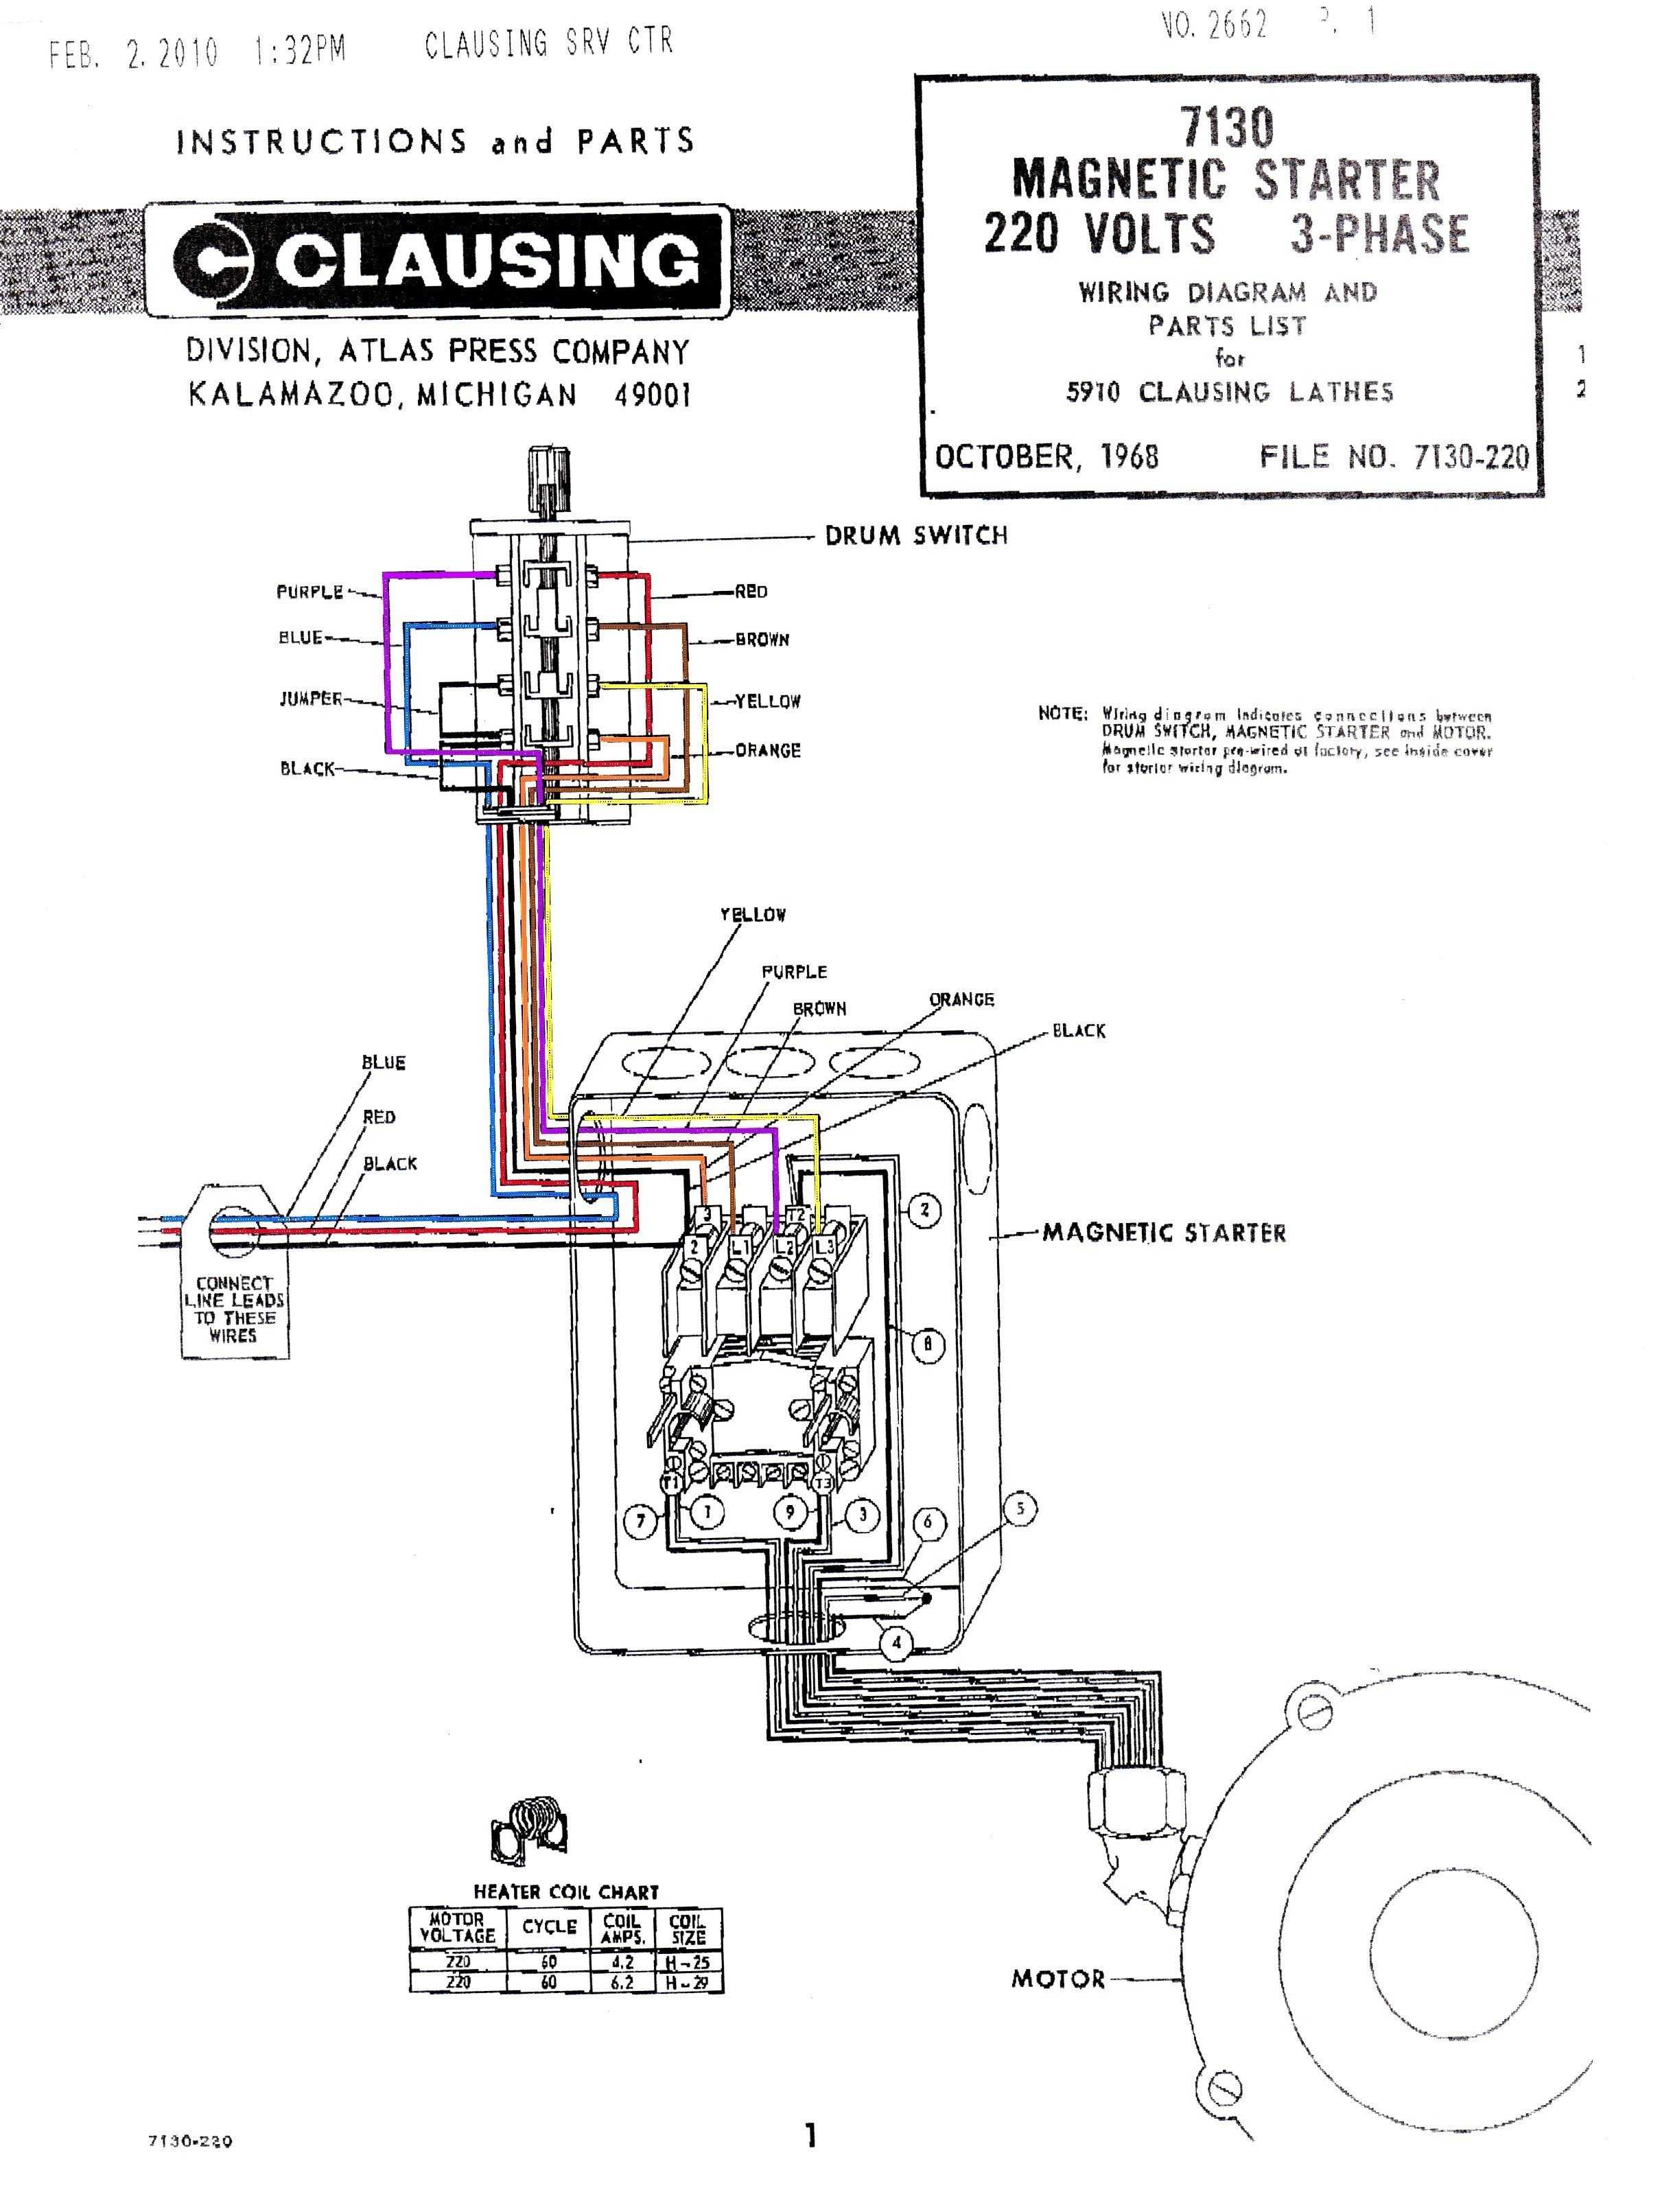 Points Wire Routing On K301 Engine Diagram] Ge Motor Starter Wiring Diagrams Full Version Hd Of Points Wire Routing On K301 Engine